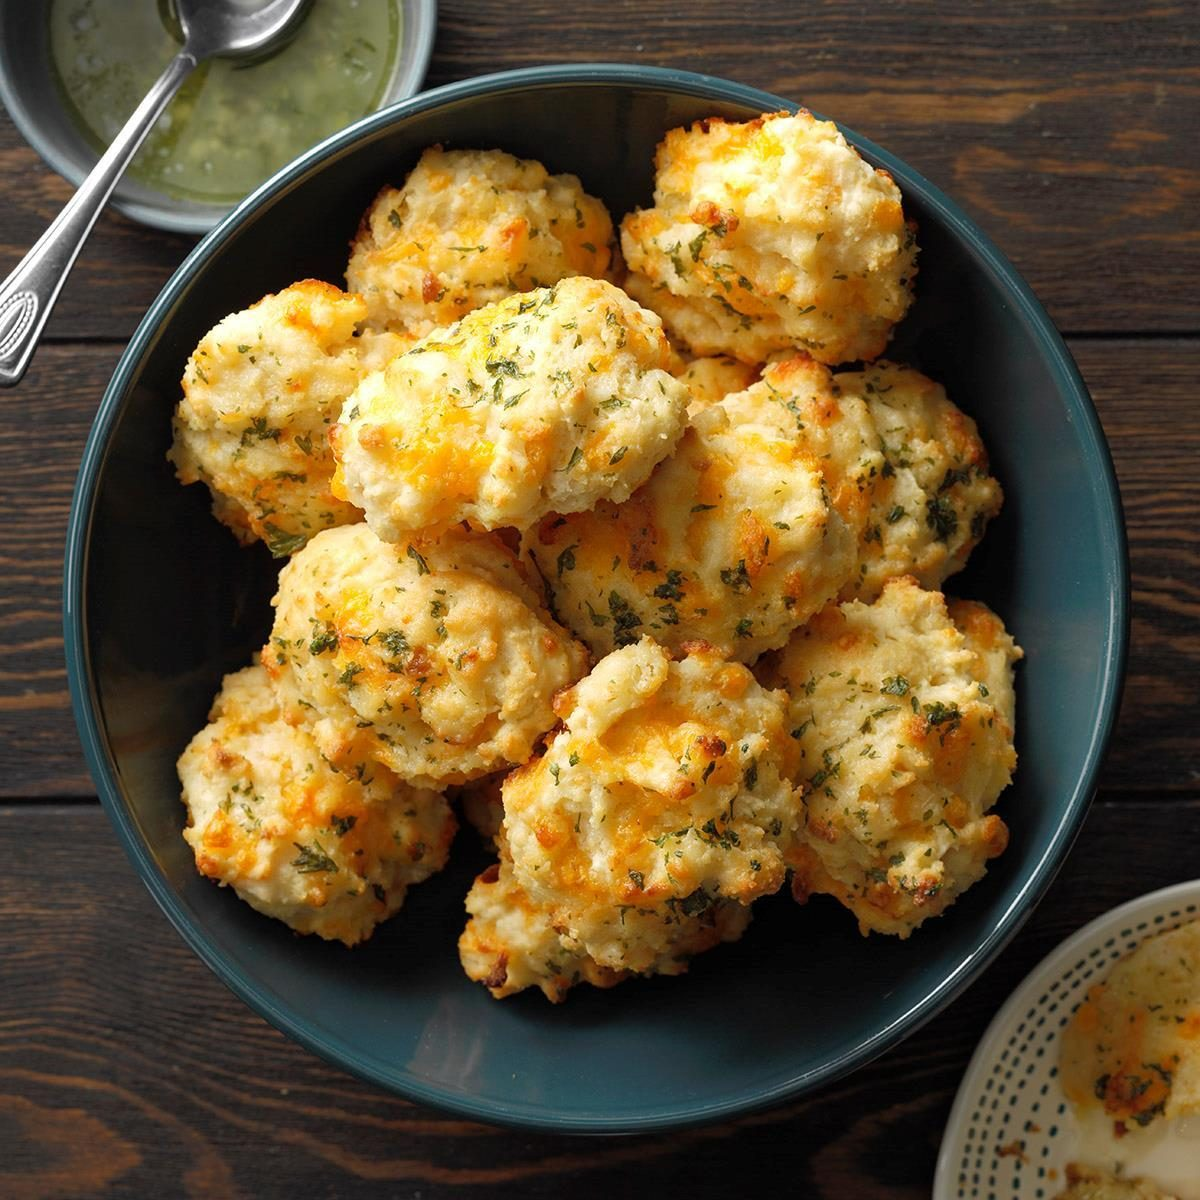 Makeover Cheddar Biscuits